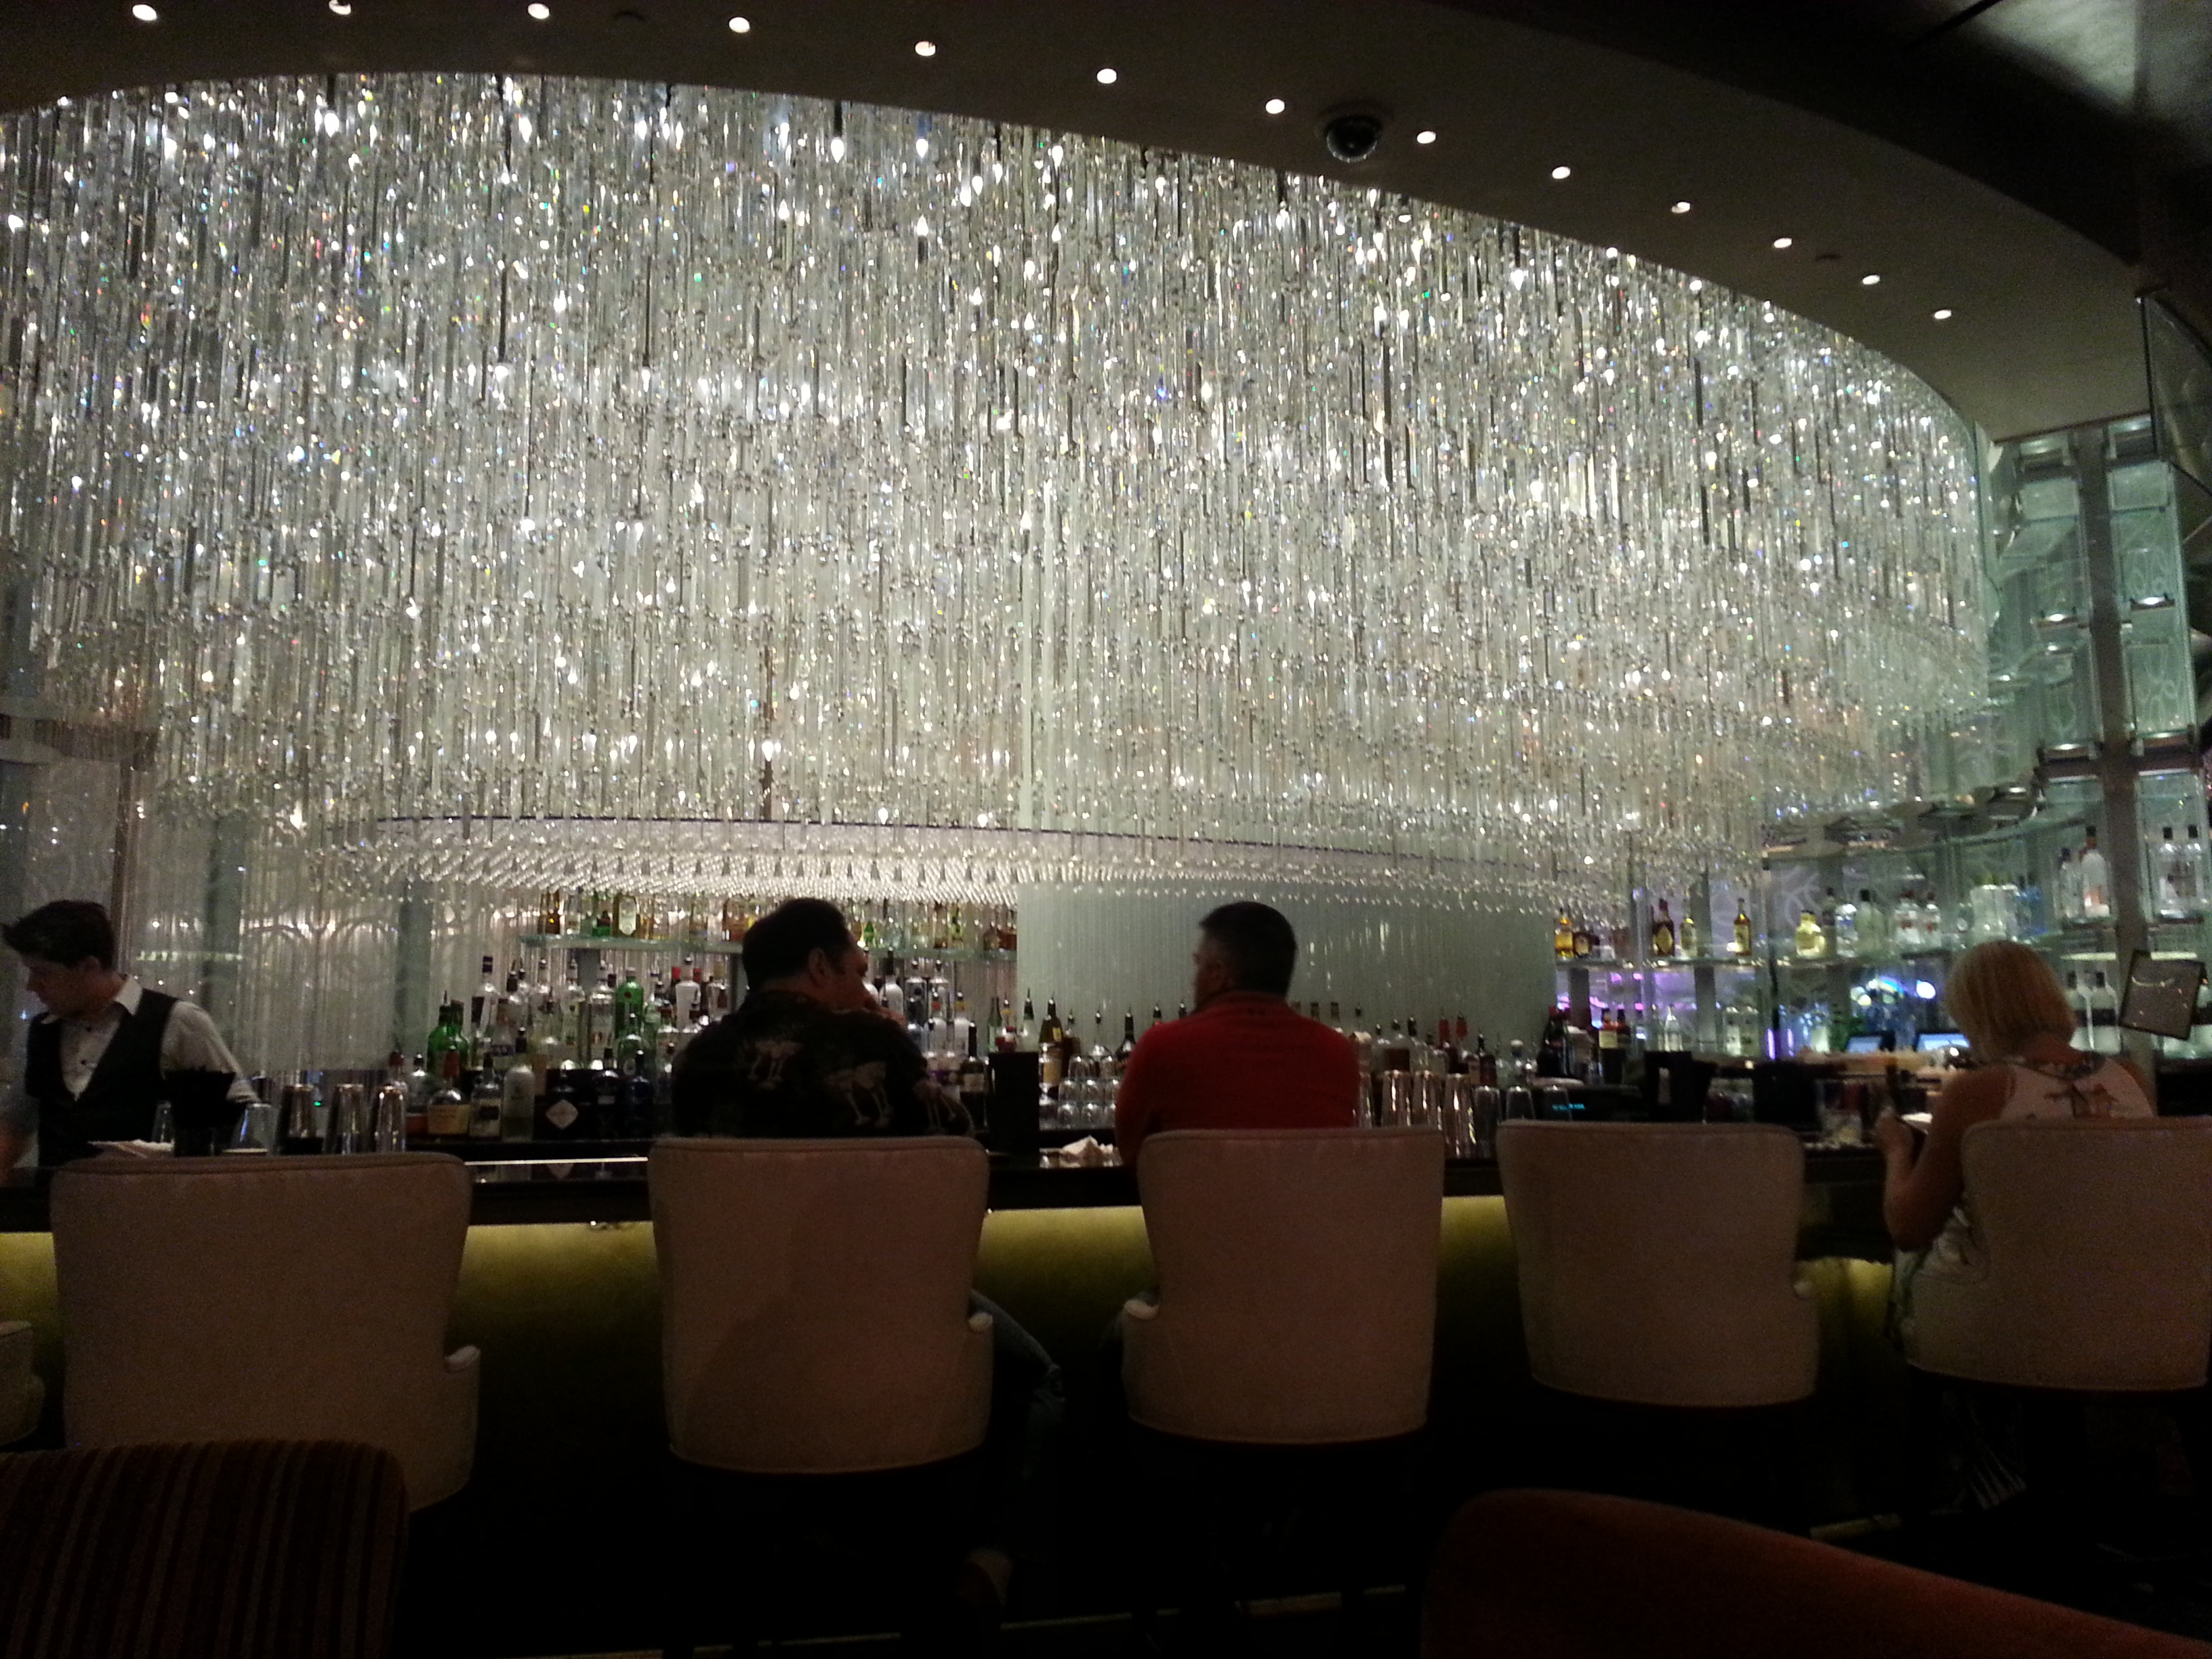 The chandelier bar lounge cosmopolitan las vegas top picks aloadofball